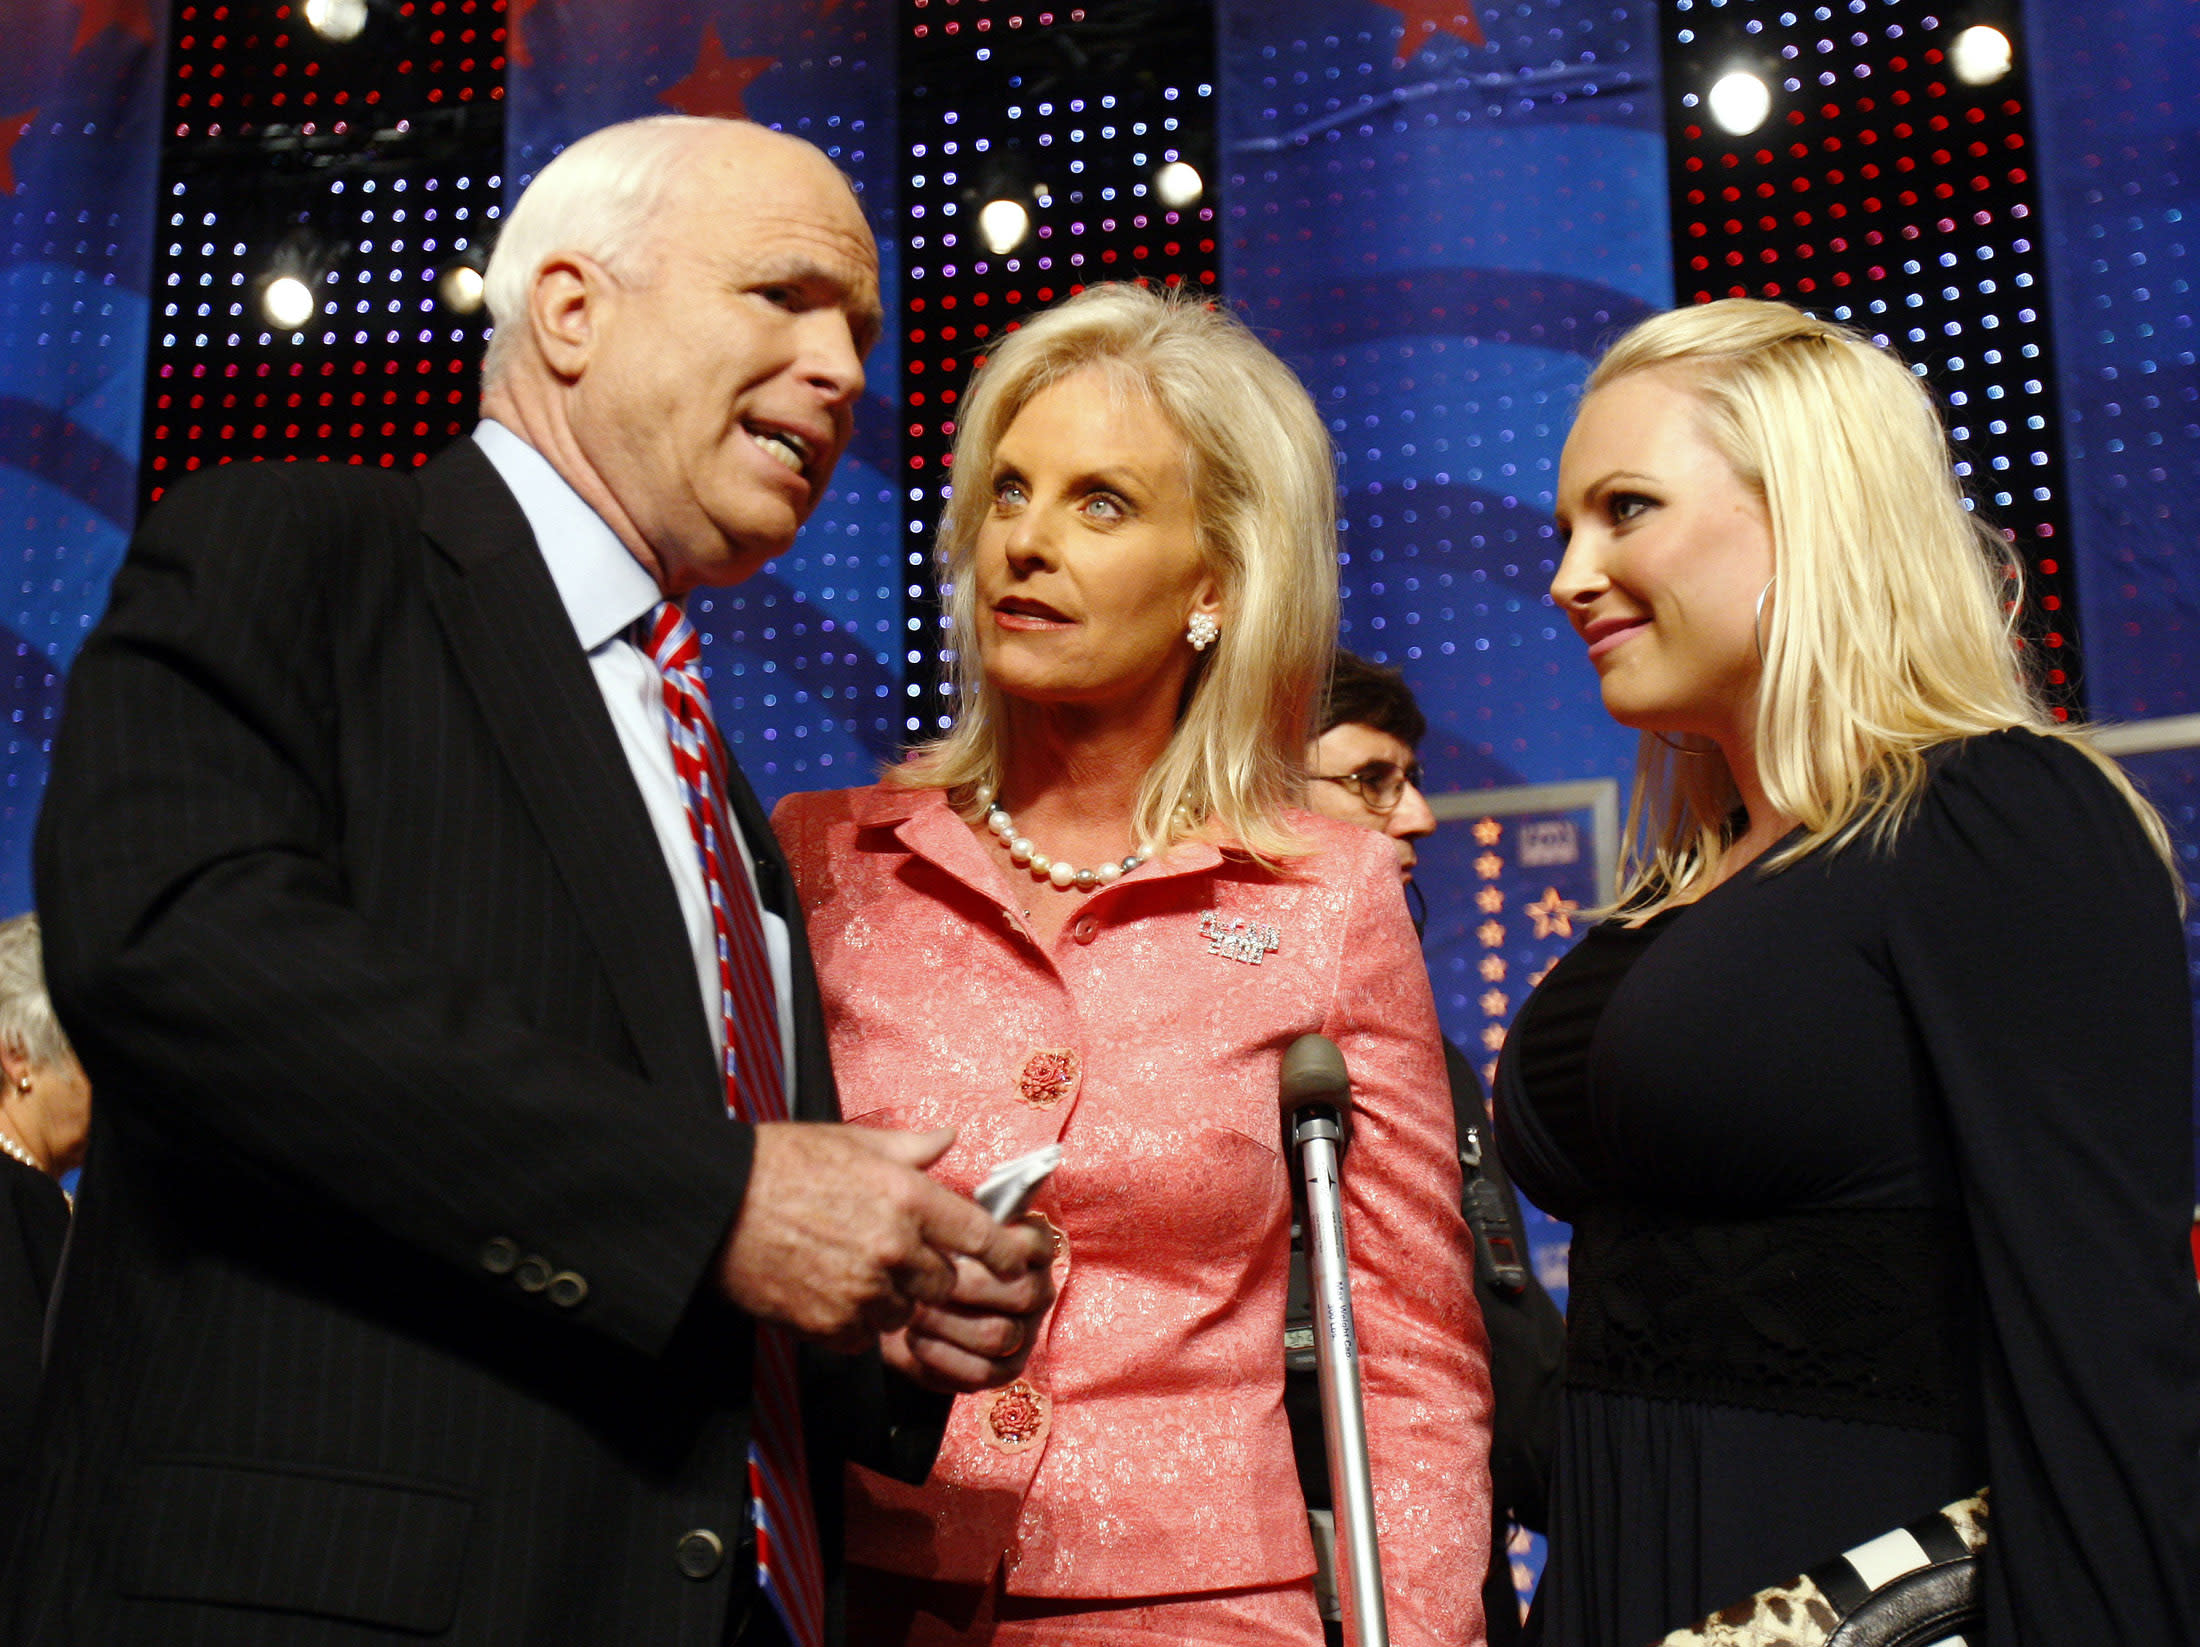 Republican presidential candidate U.S. Senator John McCain (R-AZ) is joined onstage by his wife Cindy (C) and daughter Meghan (R) following a debate among the Republican presidential candidates at the University of New Hampshire in Durham,New Hampshire, September 5, 2007. REUTERS/Brian Snyder (UNITED STATES)